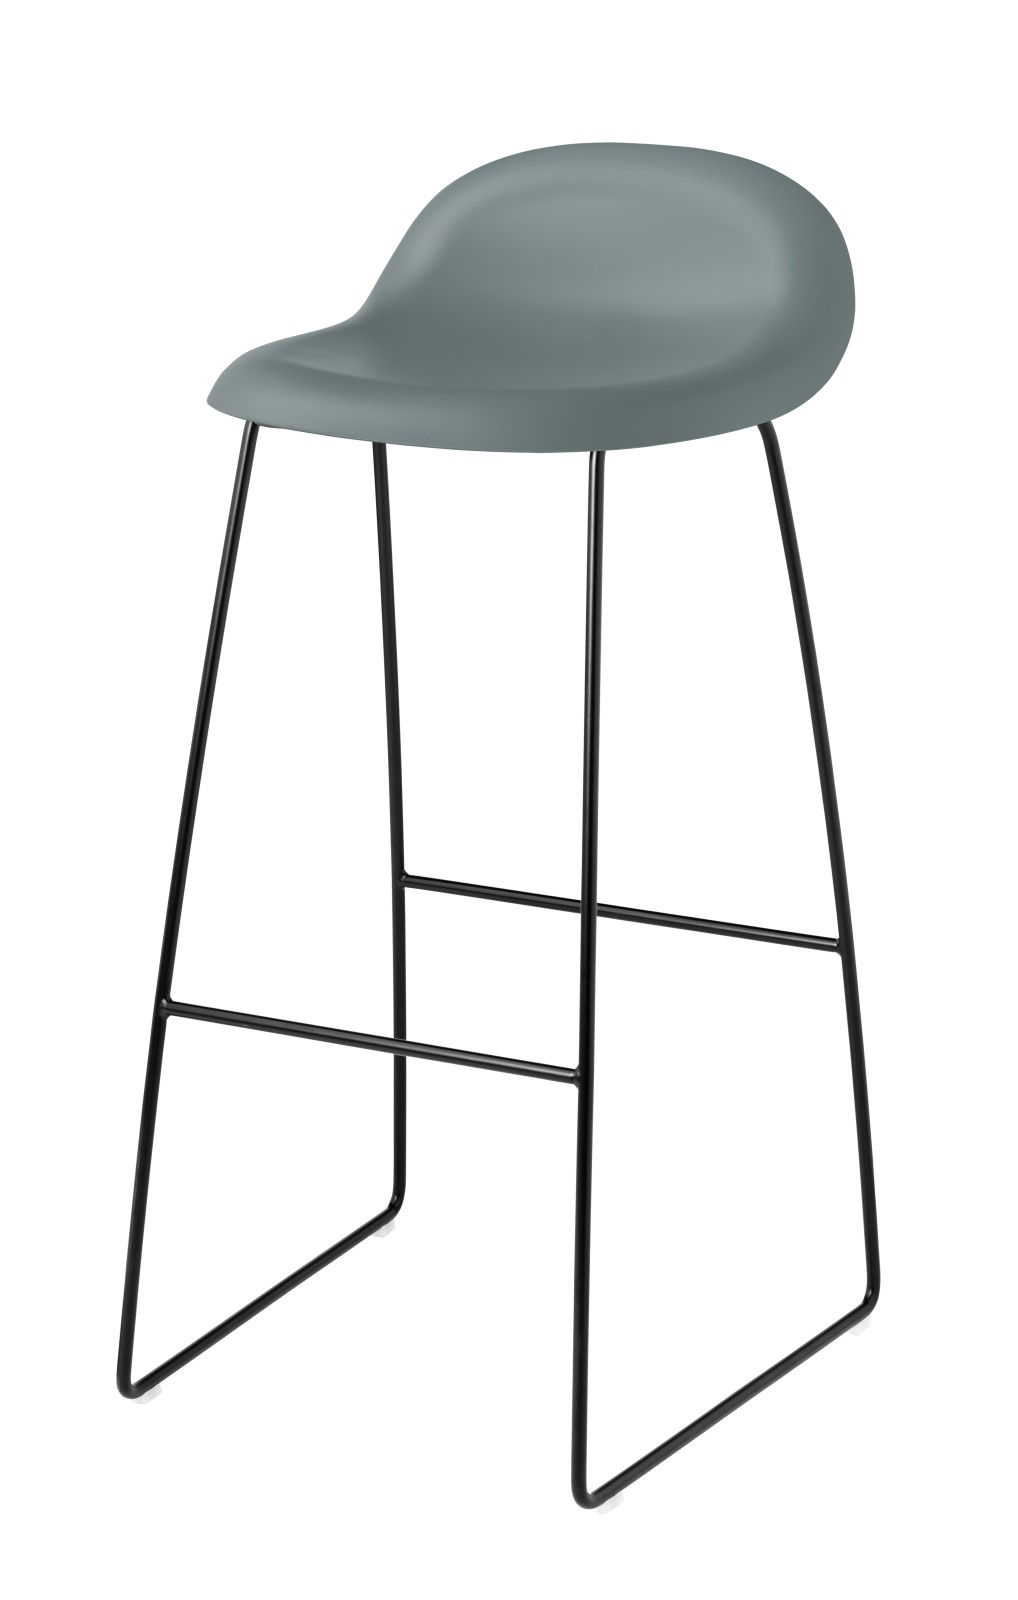 Gubi 3D Sledge Base Bar Stool - Unupholstered Gubi HiRek Rainy Grey, Gubi Metal Black